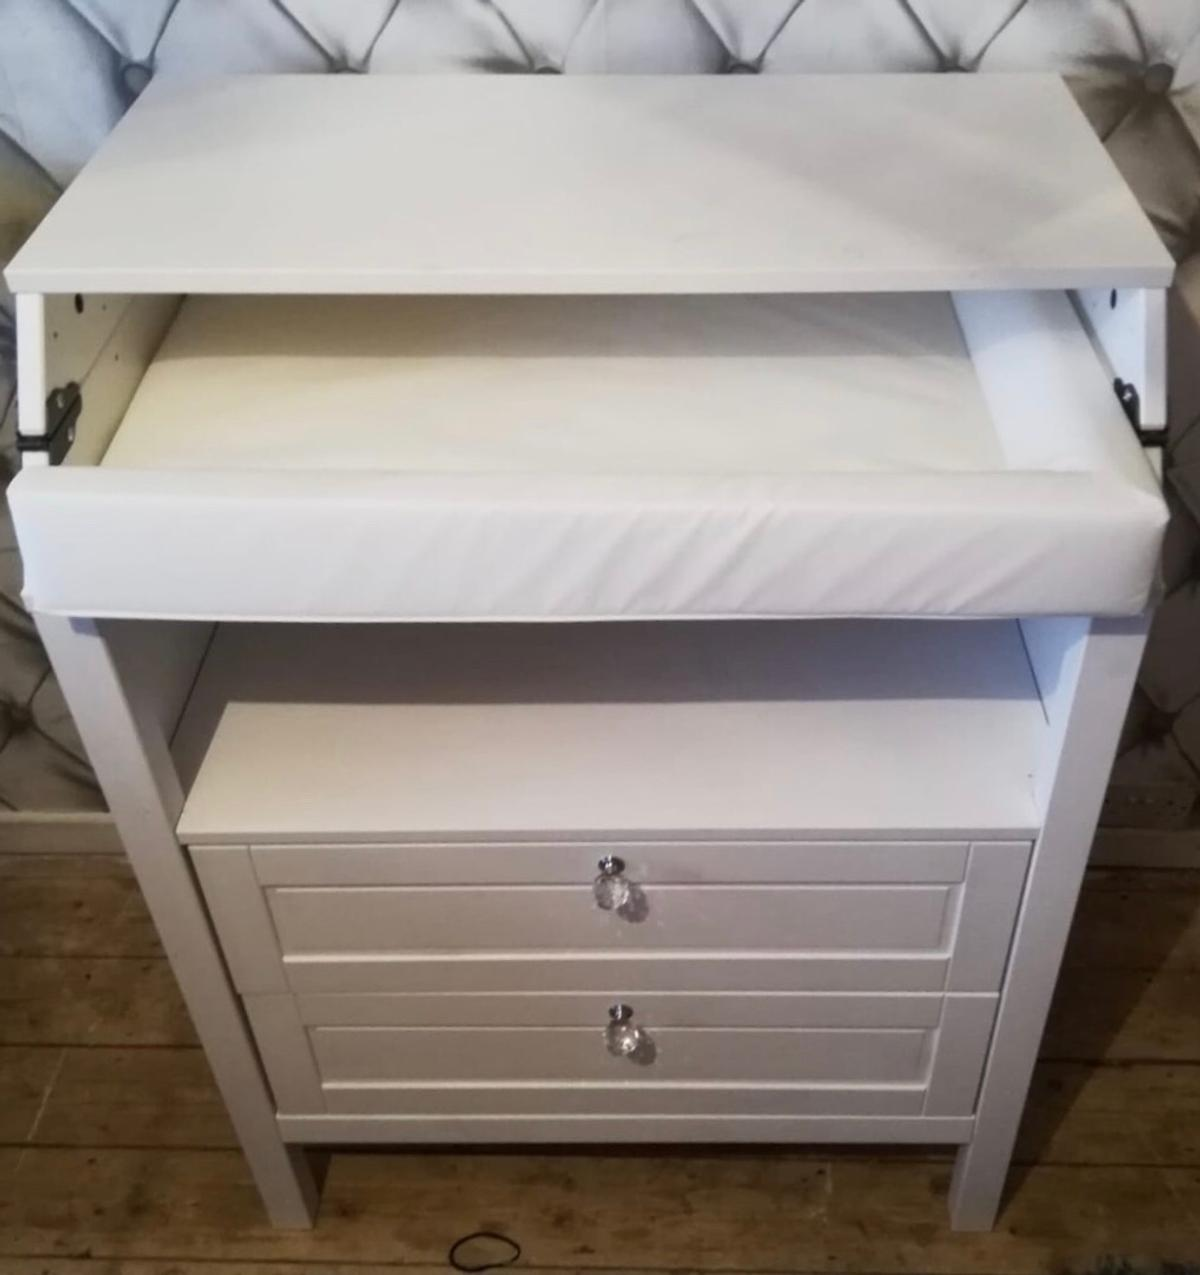 Changing Table Chest Of Drawers Ikea Sundvik Changing Table Chest Of Drawers In B37 Solihull For